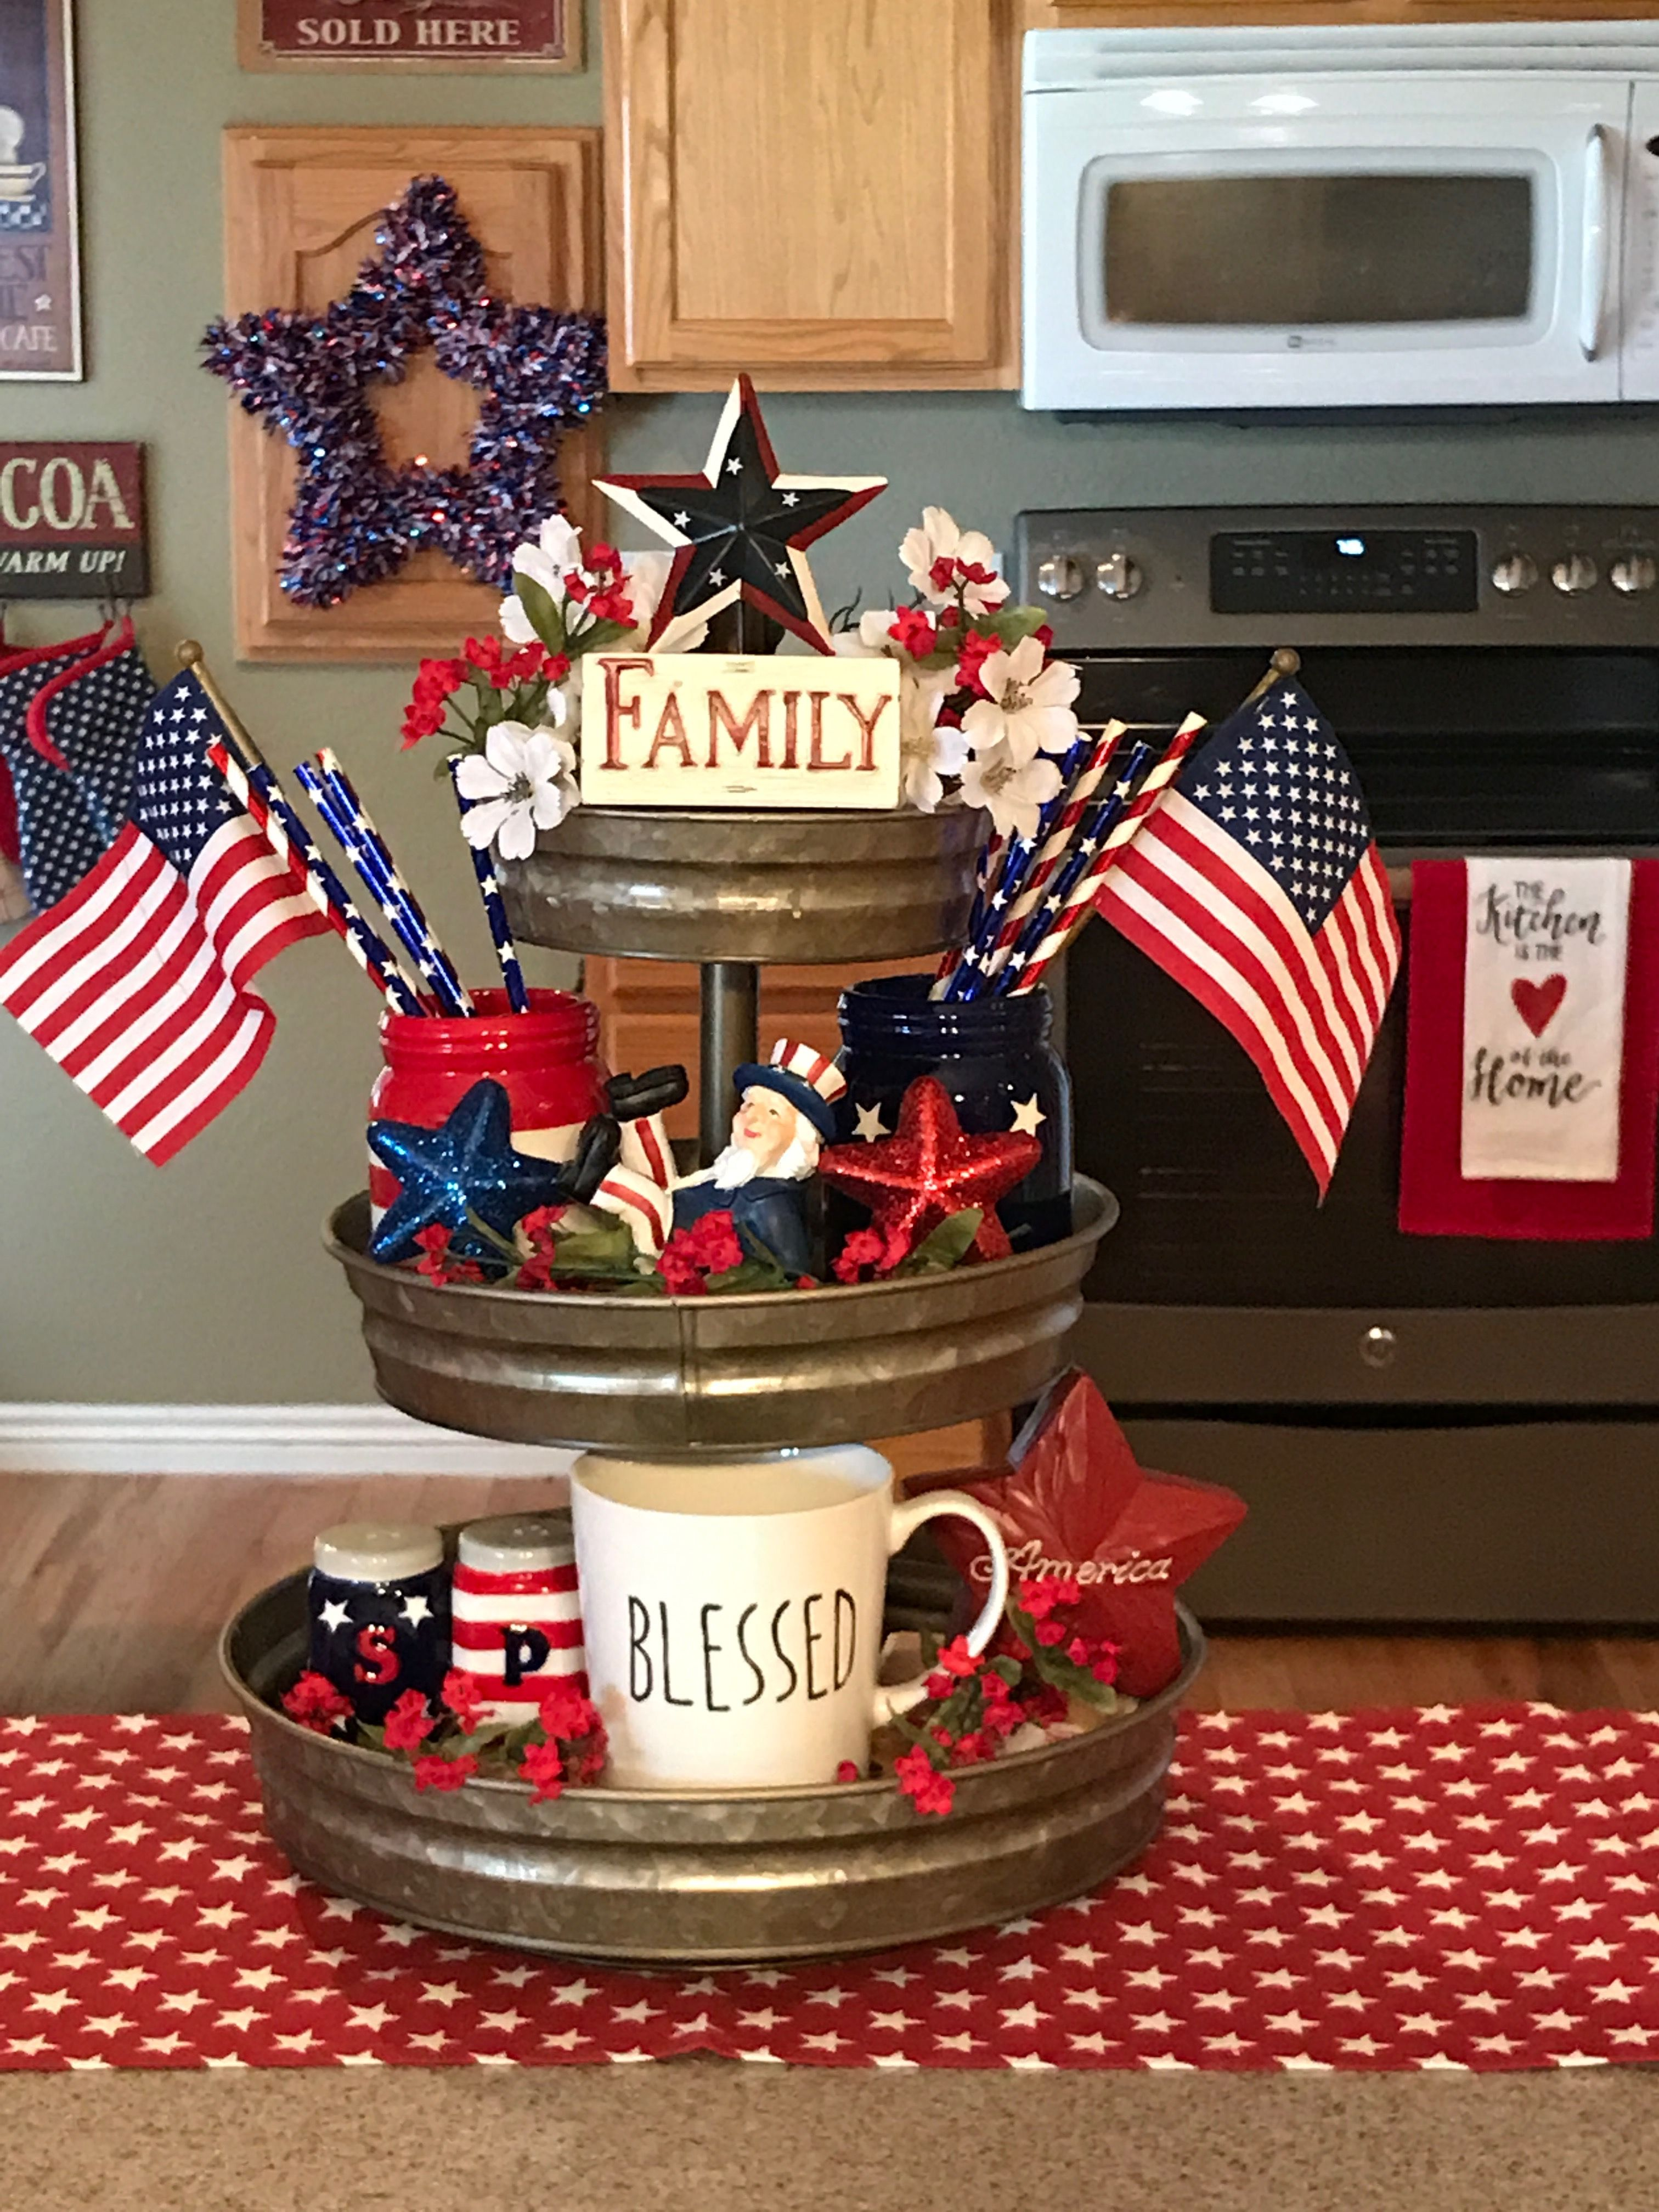 4th of July Decor 4th of July Tree 4th of July Ornaments Red White and Blue Decor 4th of July Tiered Tray Decor Mini Cupcake Decor